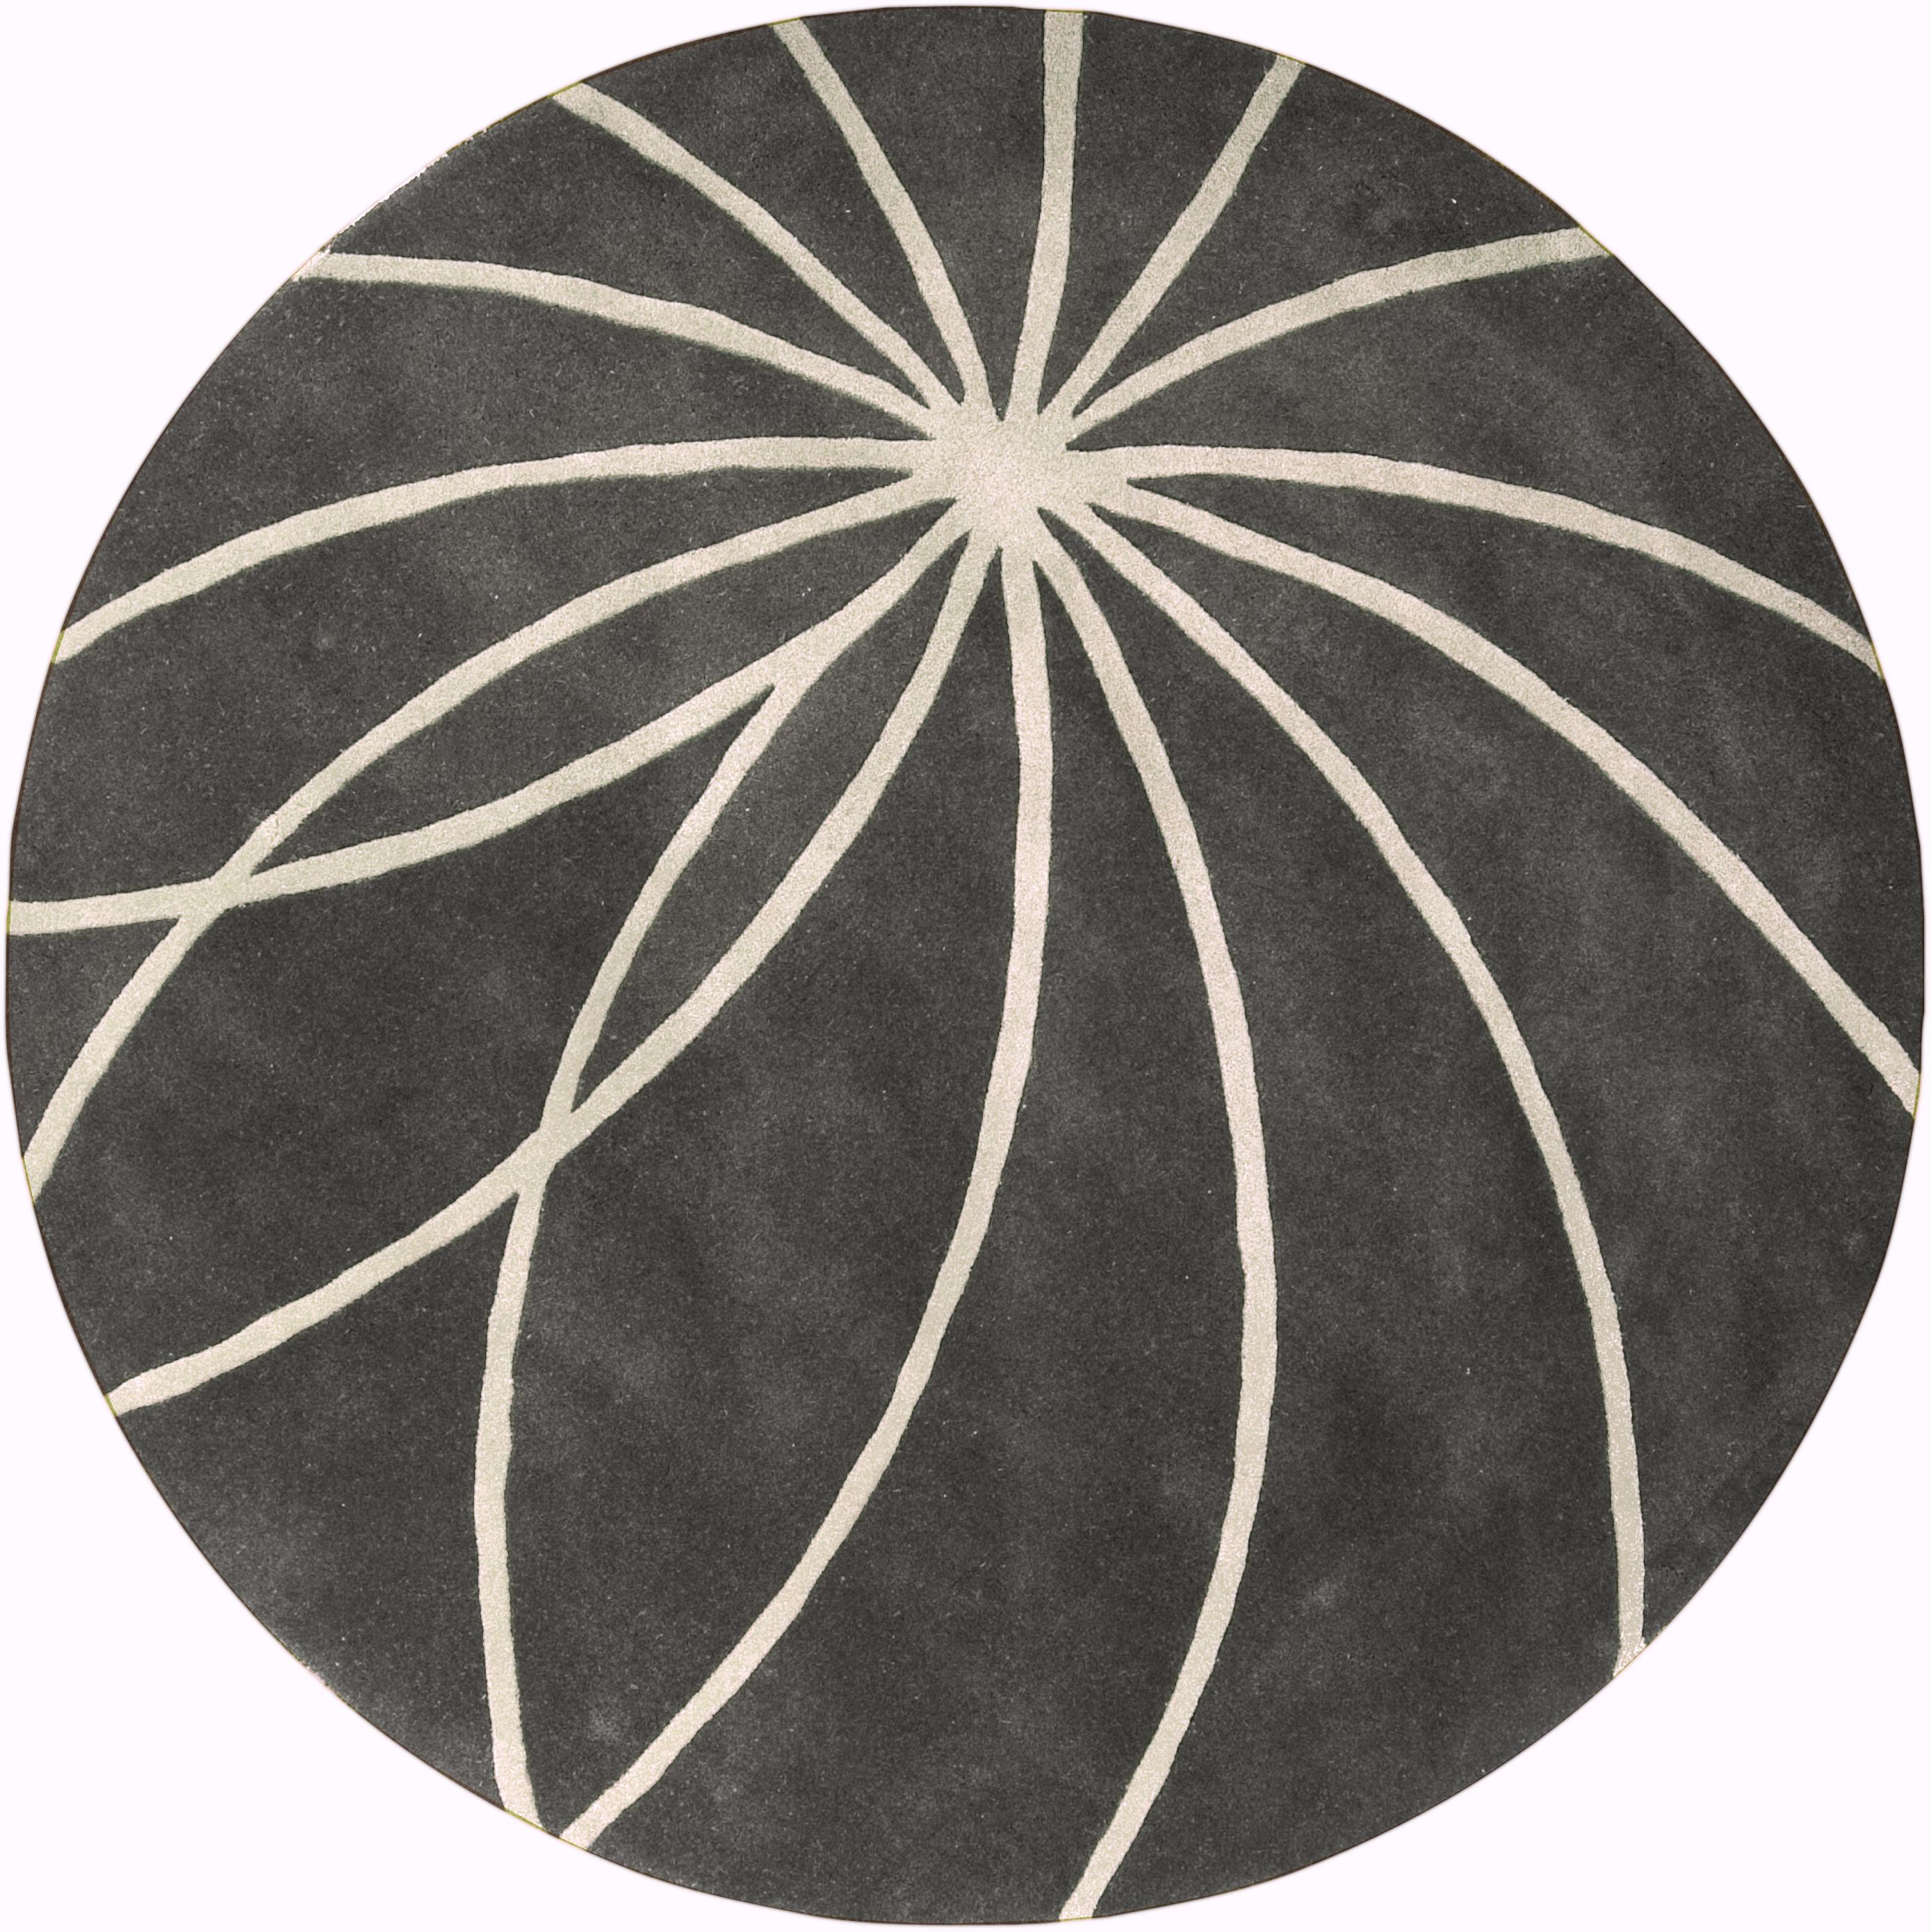 Surya Rugs Forum 4' Round - Item Number: FM7173-4RD